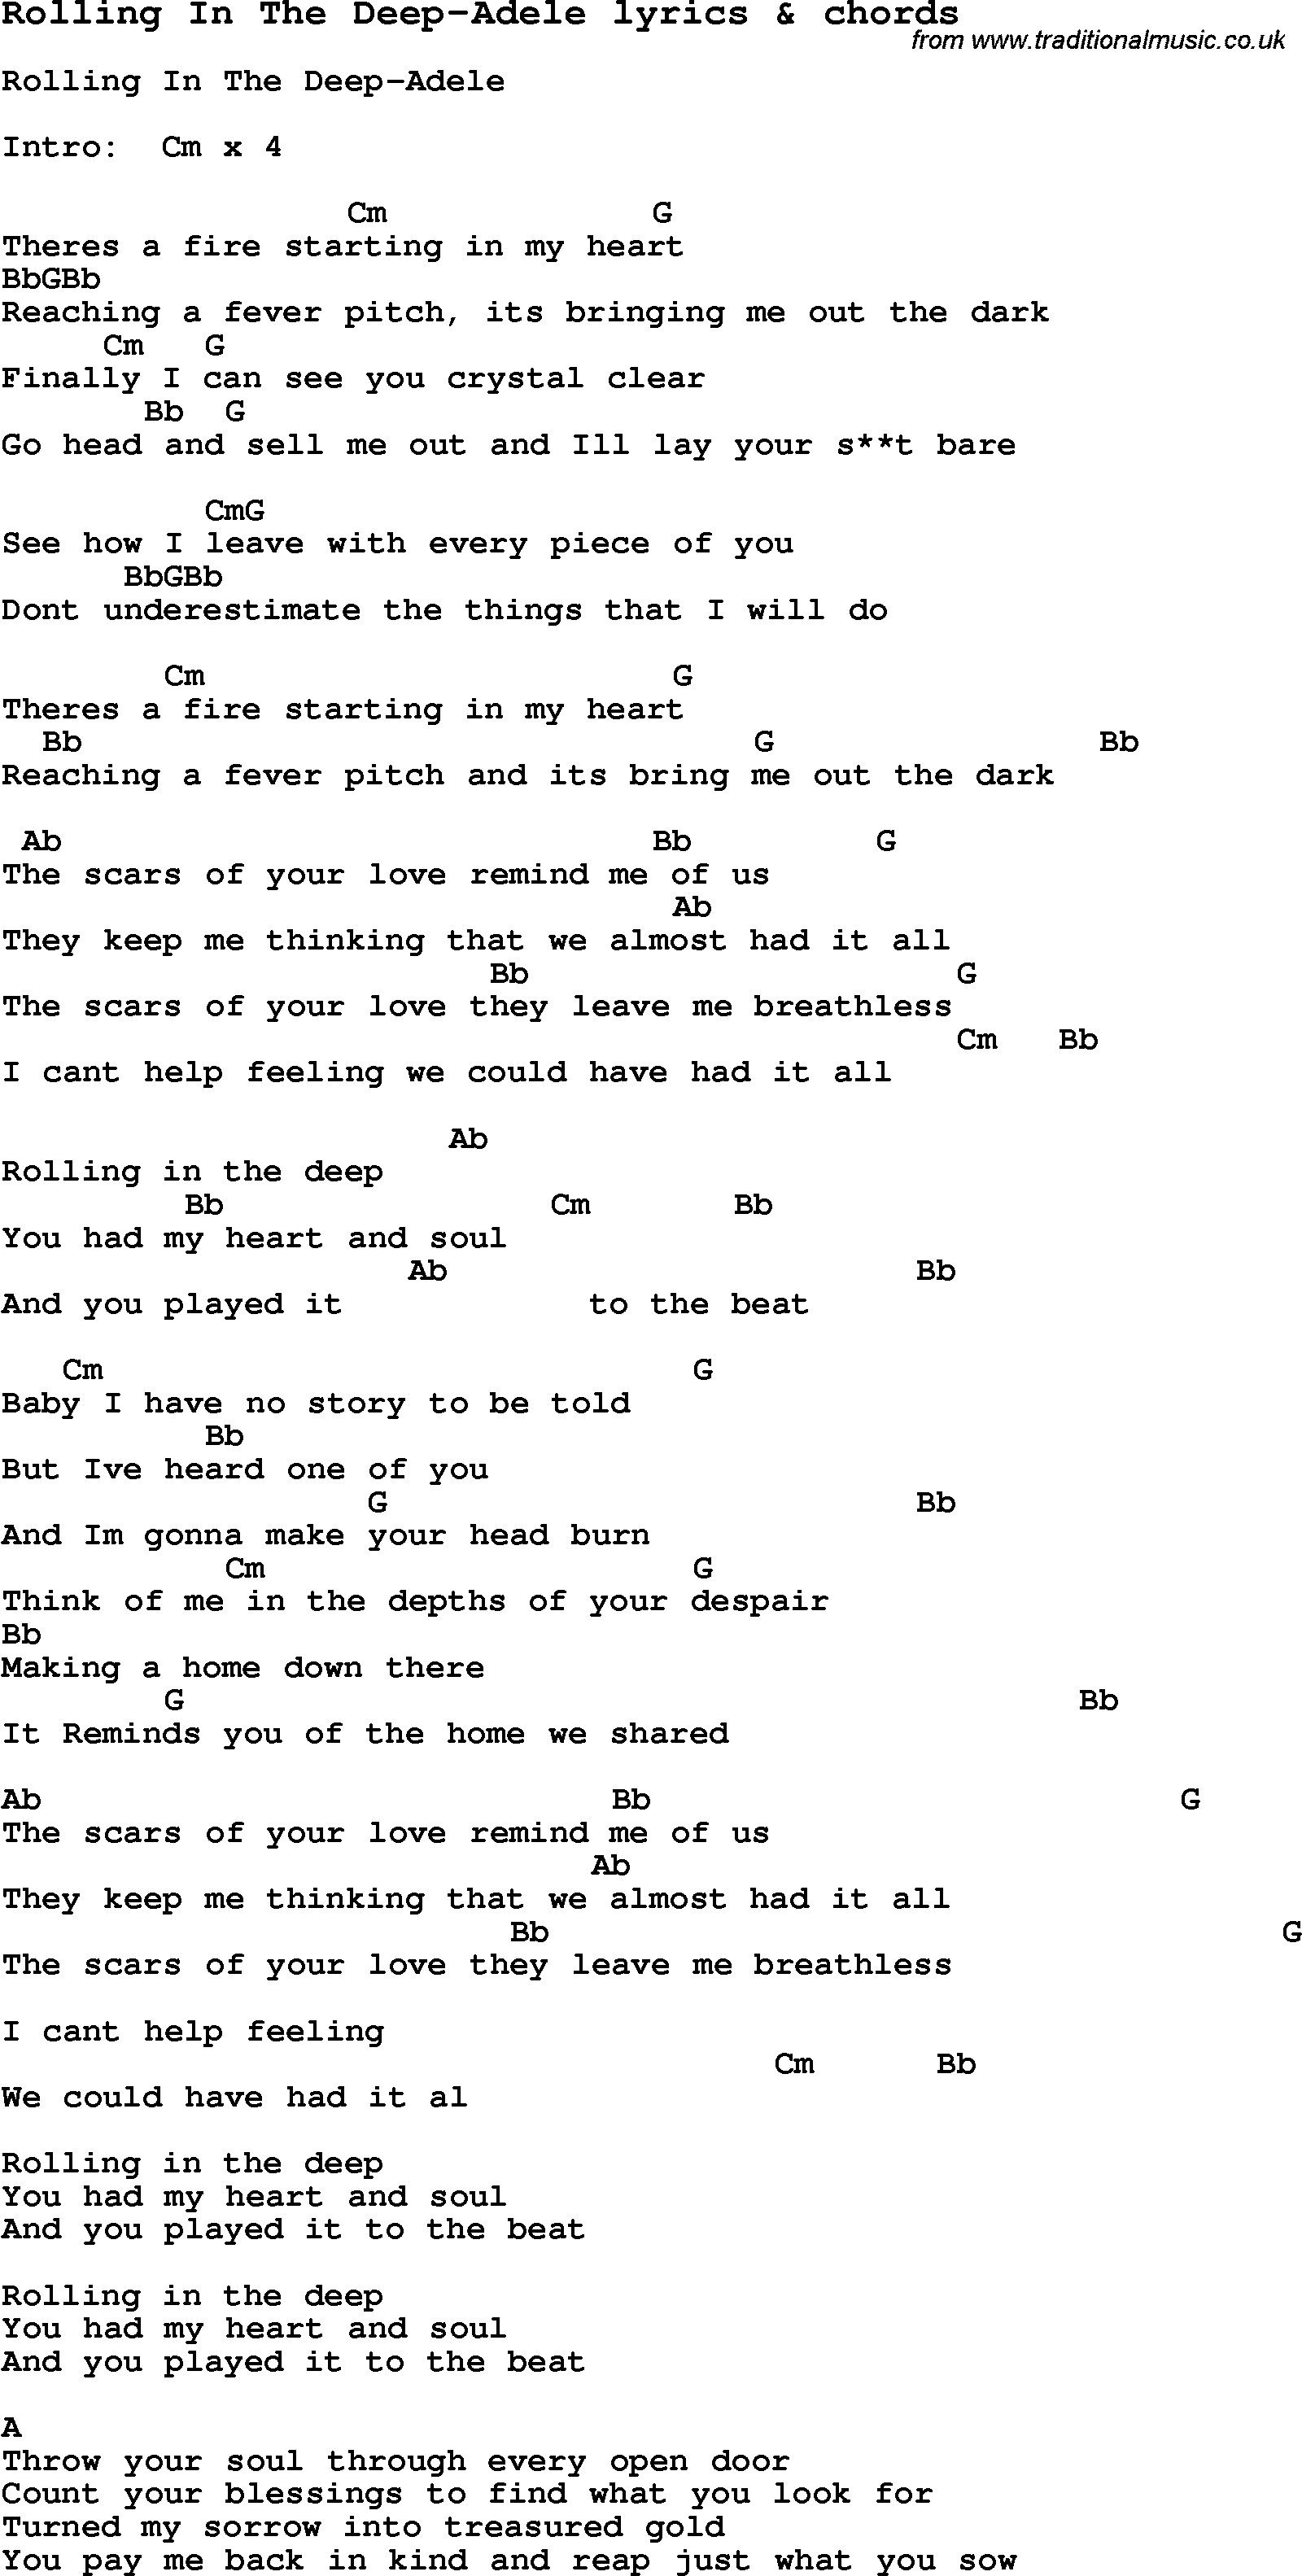 Love Song Lyrics for: Rolling In The Deep-Adele with chords